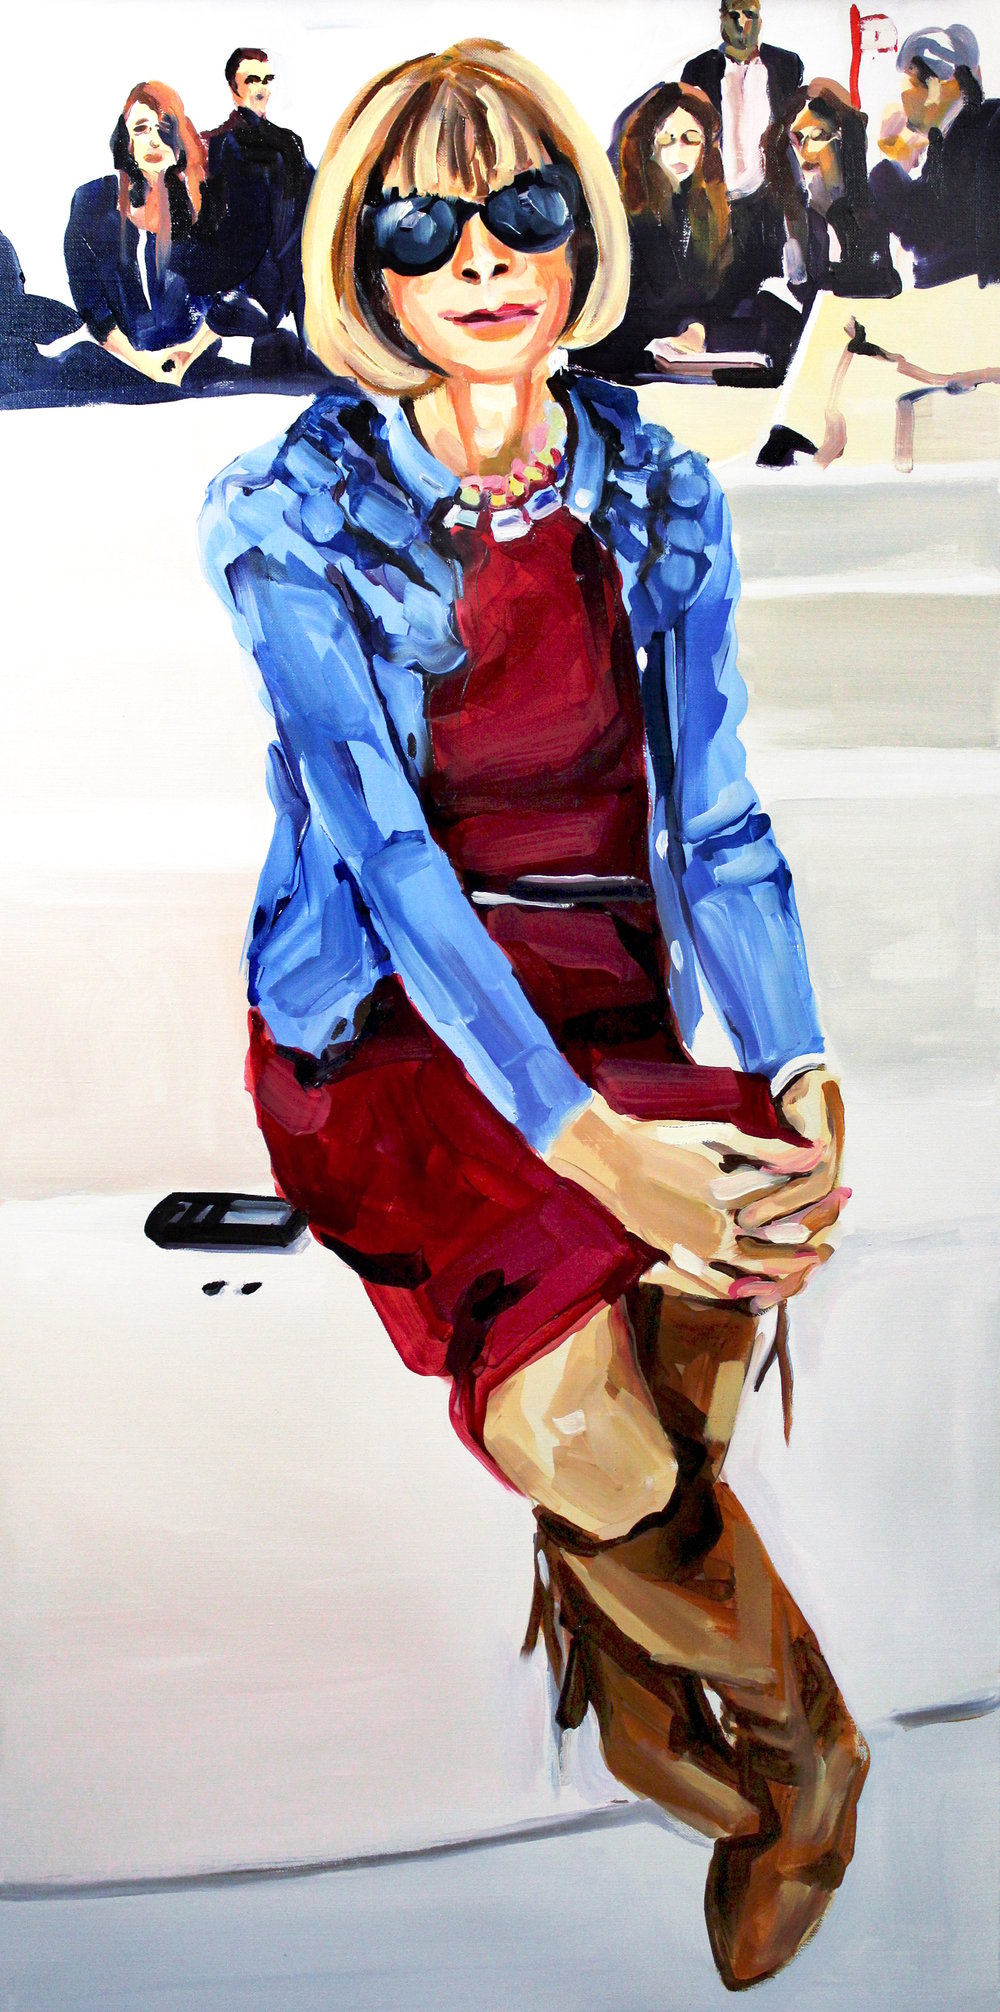 Laura Collins Anna Wintour Double Crossing Her Legs no. 6 oil on linen 24x48 2018.JPG